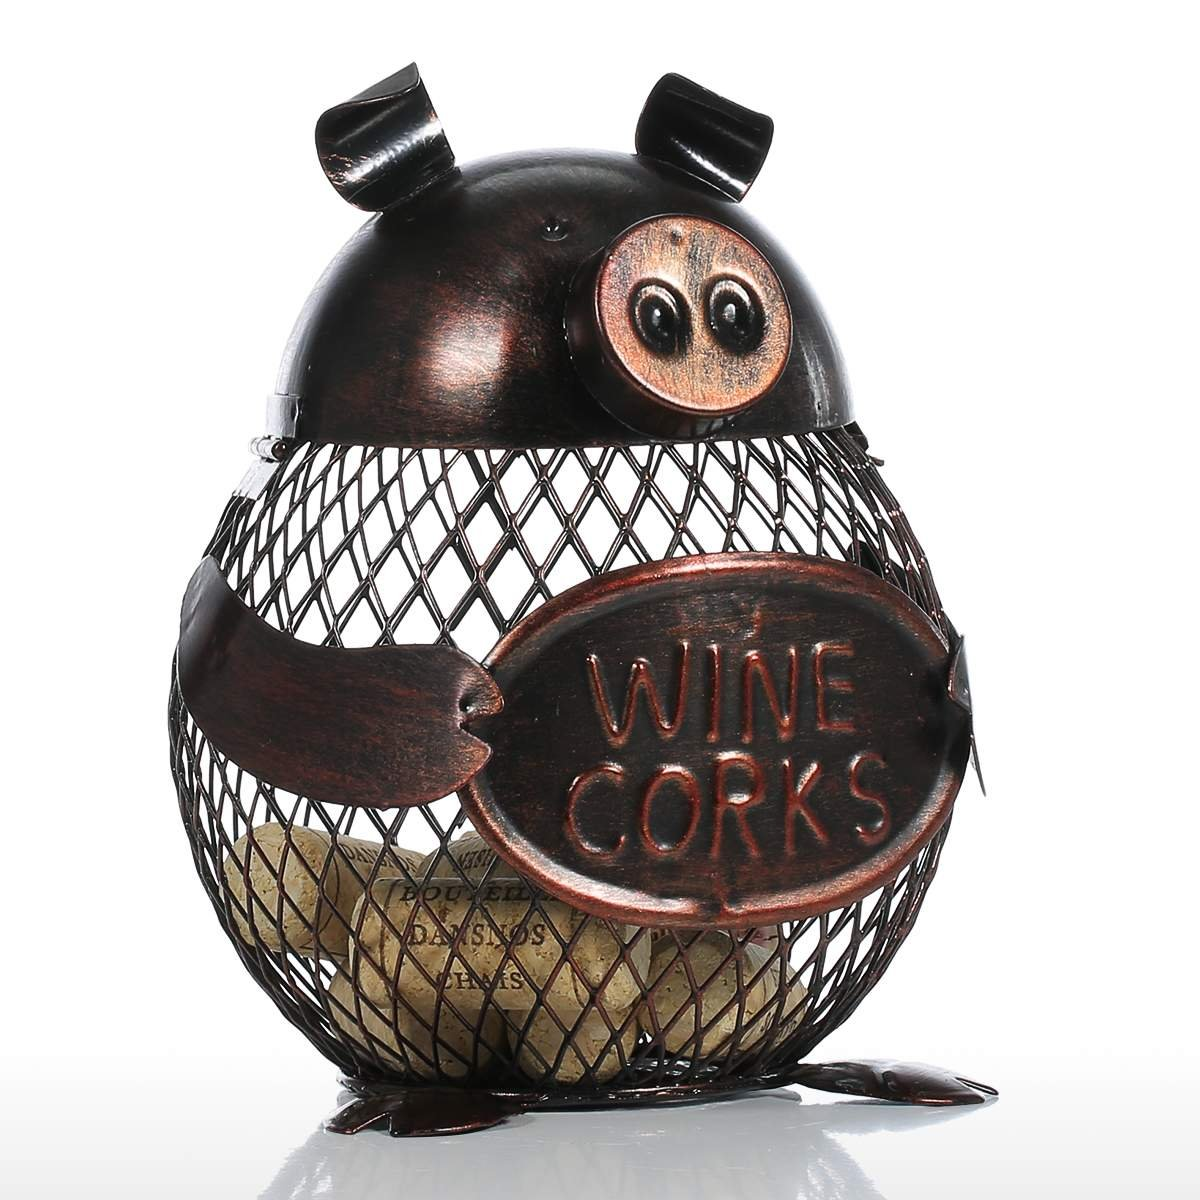 Tooarts Piggy Wine Barrel Cork Cage Container Metal Sculpture Handicraft Gift Home Decor by Tooarts (Image #2)